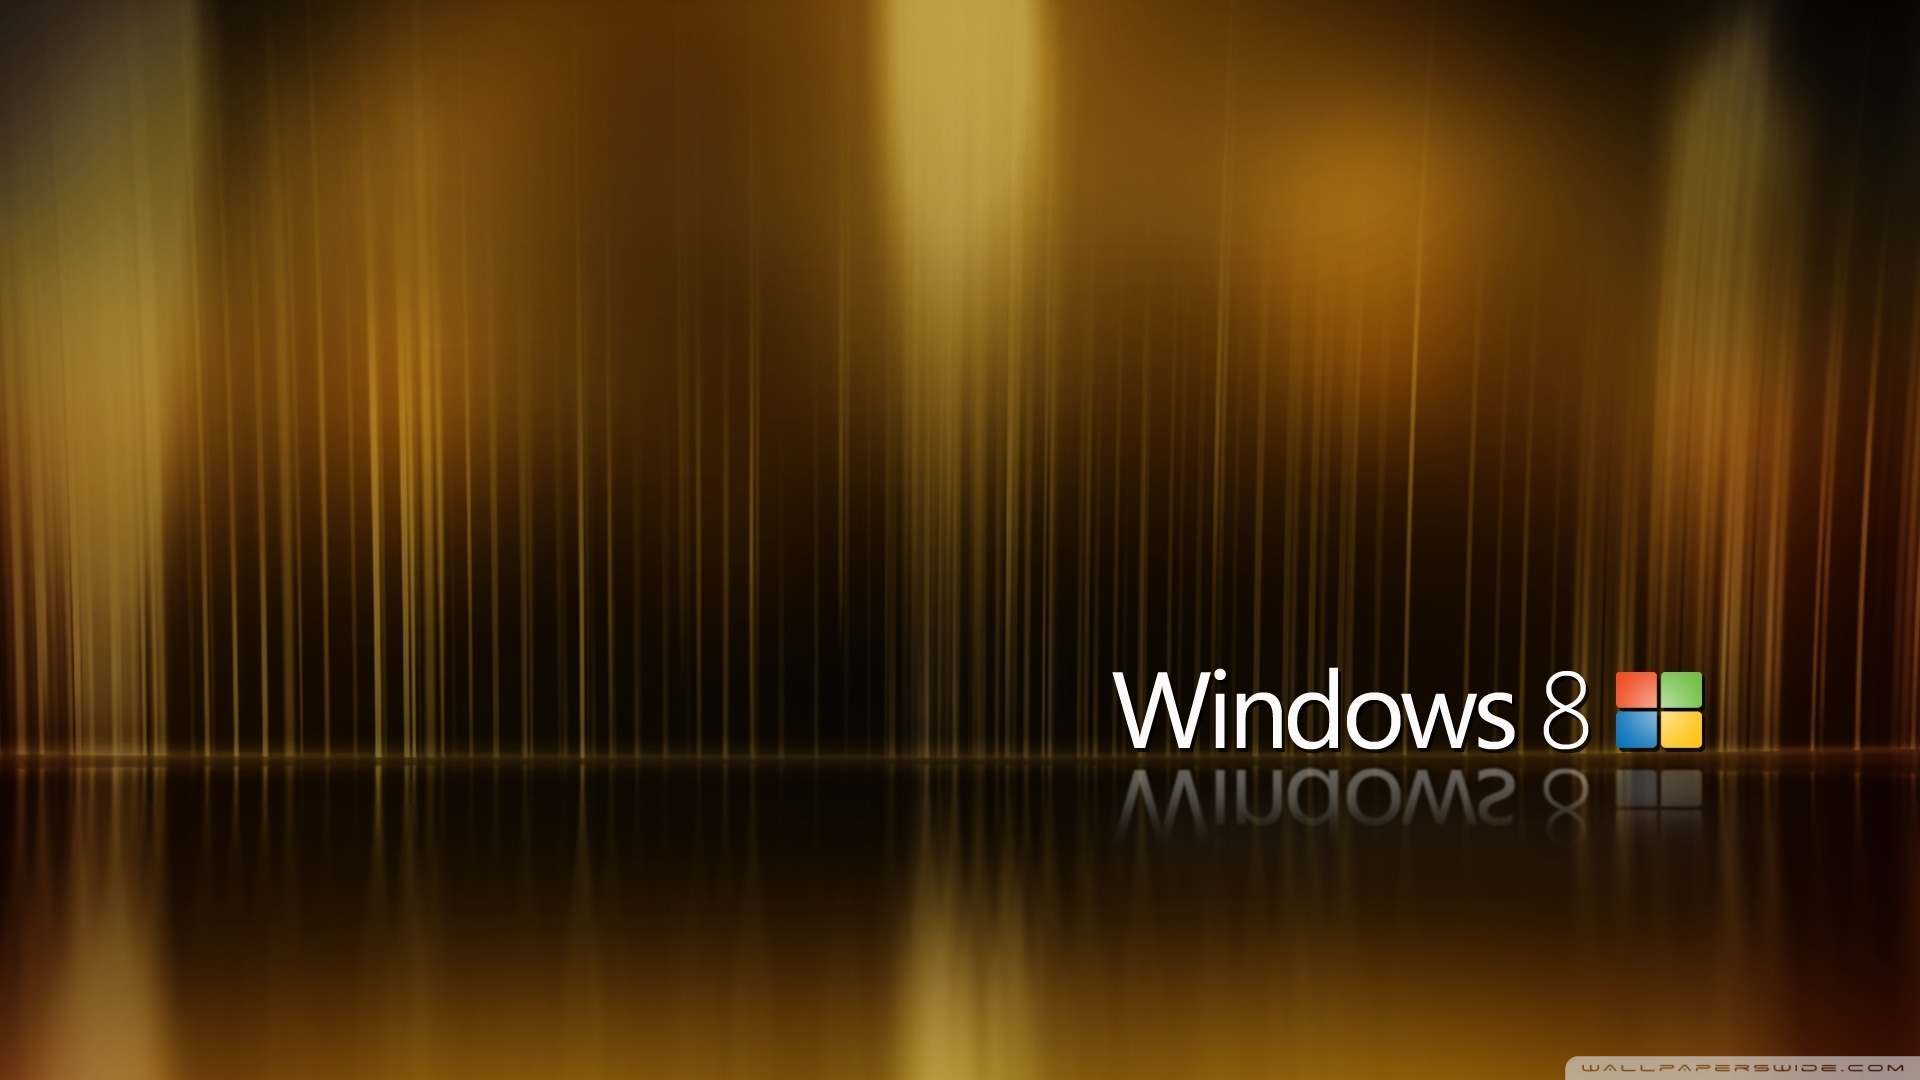 Windows 8 Wallpaper HD